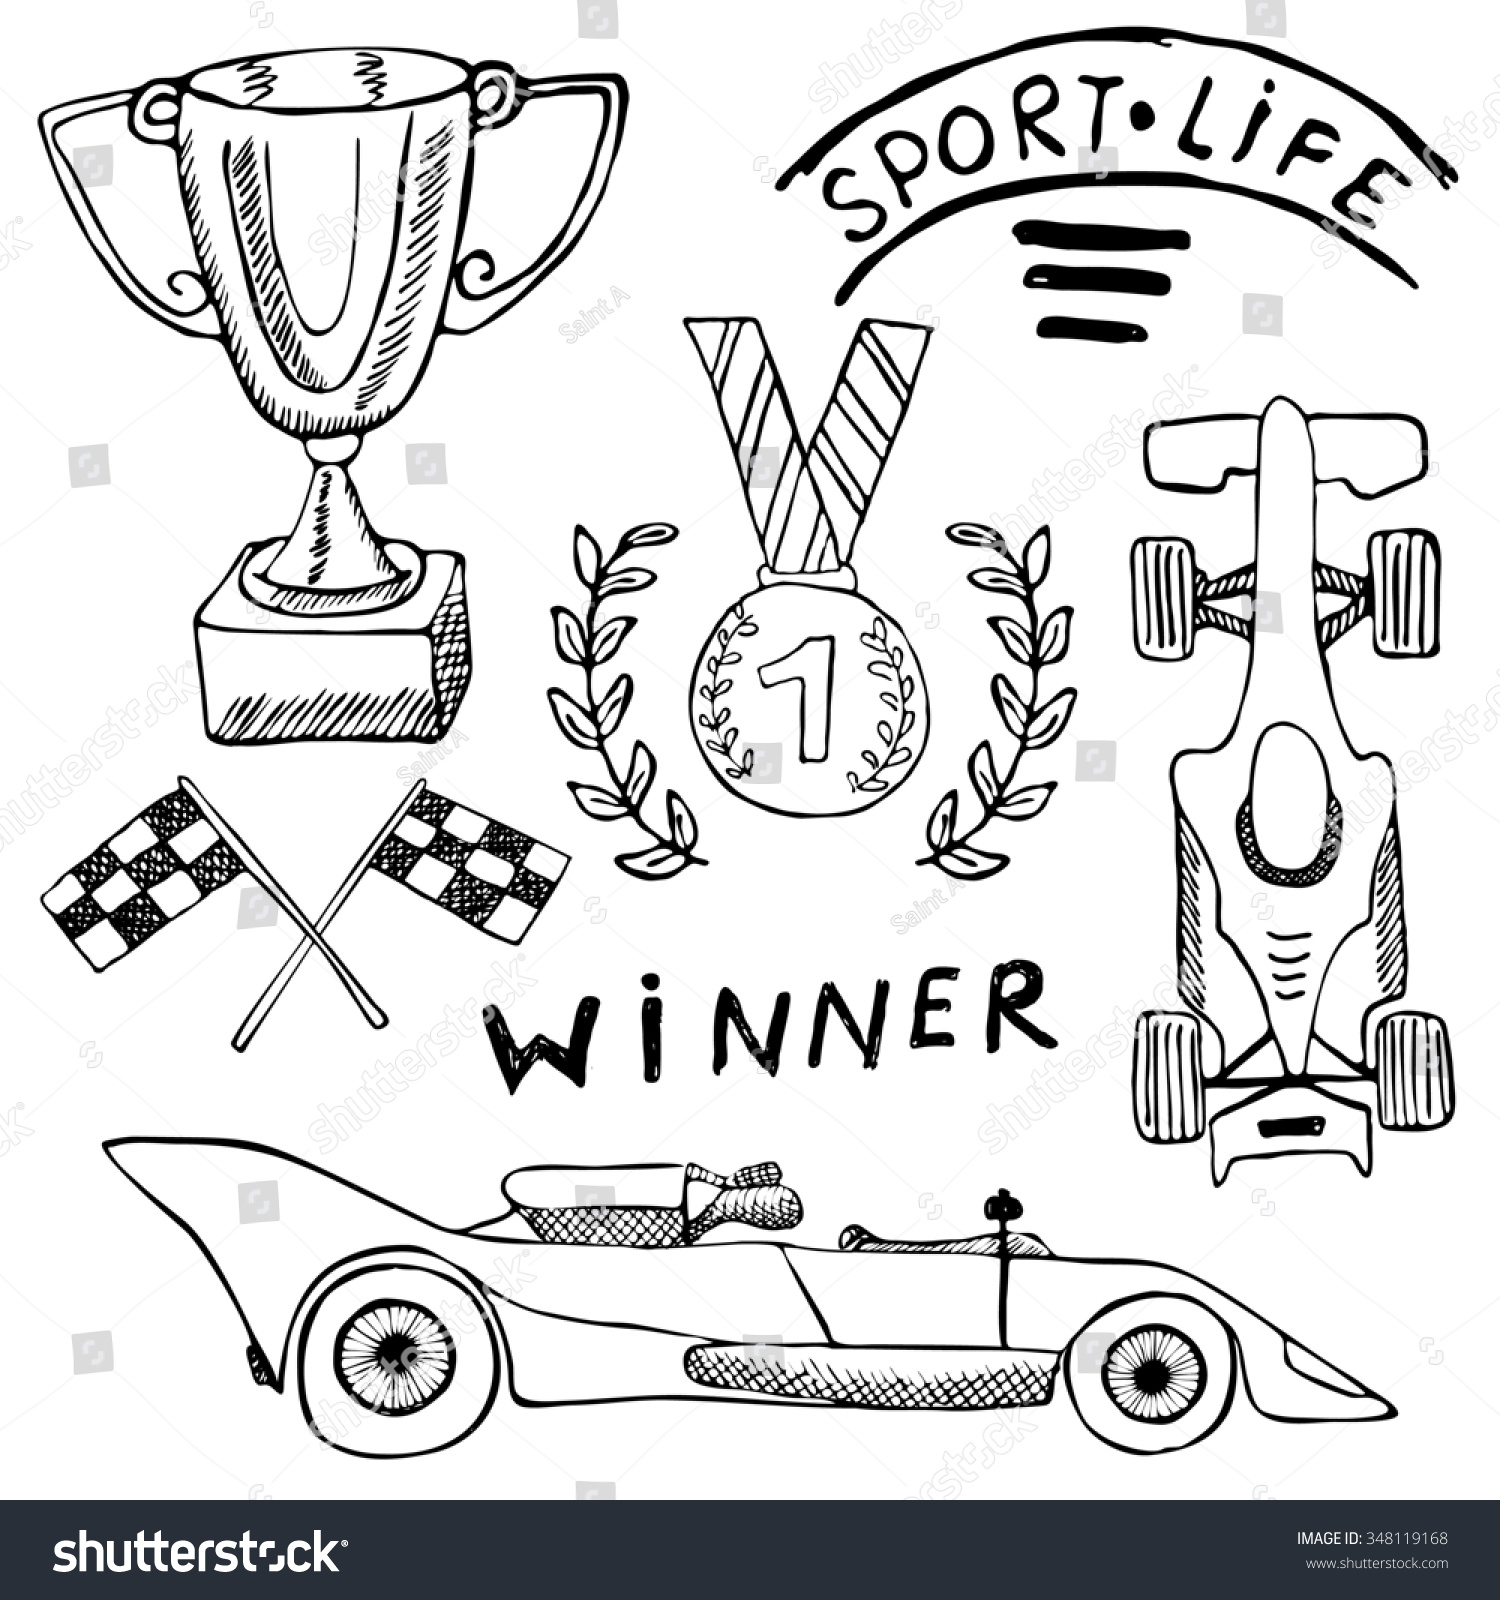 royalty free stock illustration of sport auto items doodles elements Vehicle Entertainment System sport auto items doodles elements hand drawn set with flag icon checkered or racing